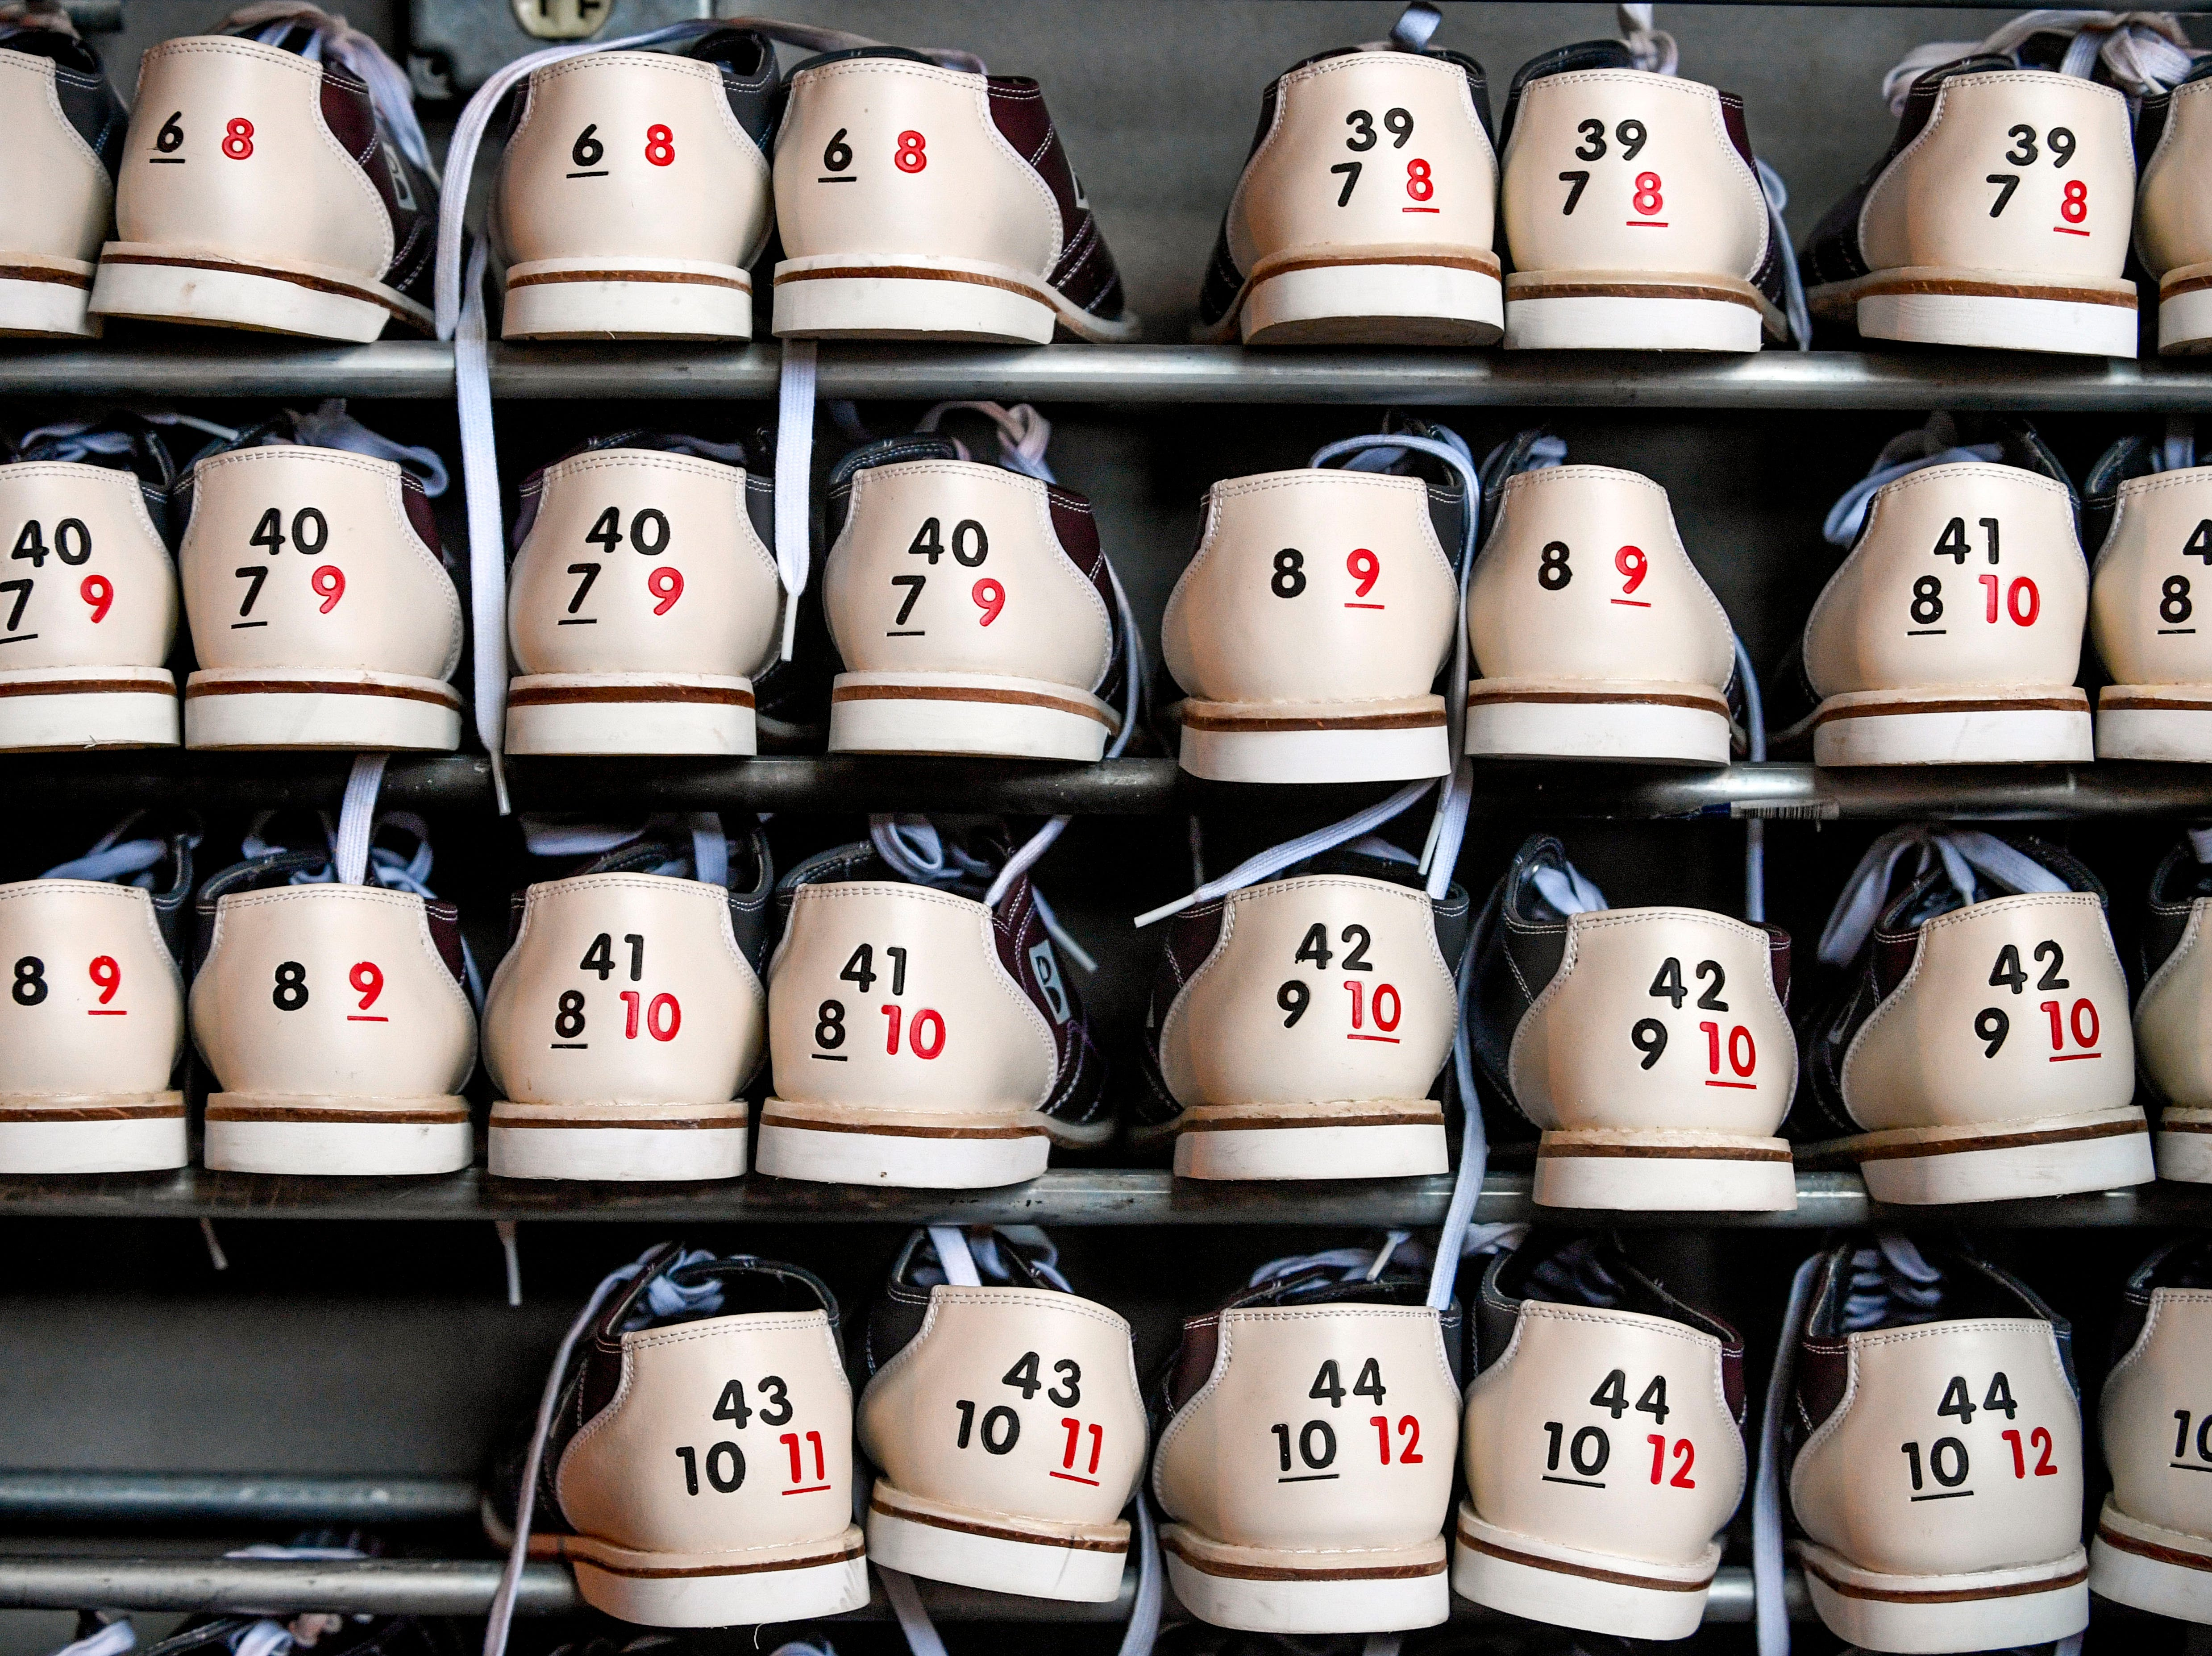 Various sizes of bowling shoes can be seen in cubbies behind the bar at Hub City Brewing in Jackson, Tenn., on Wednesday, Feb. 6, 2019.